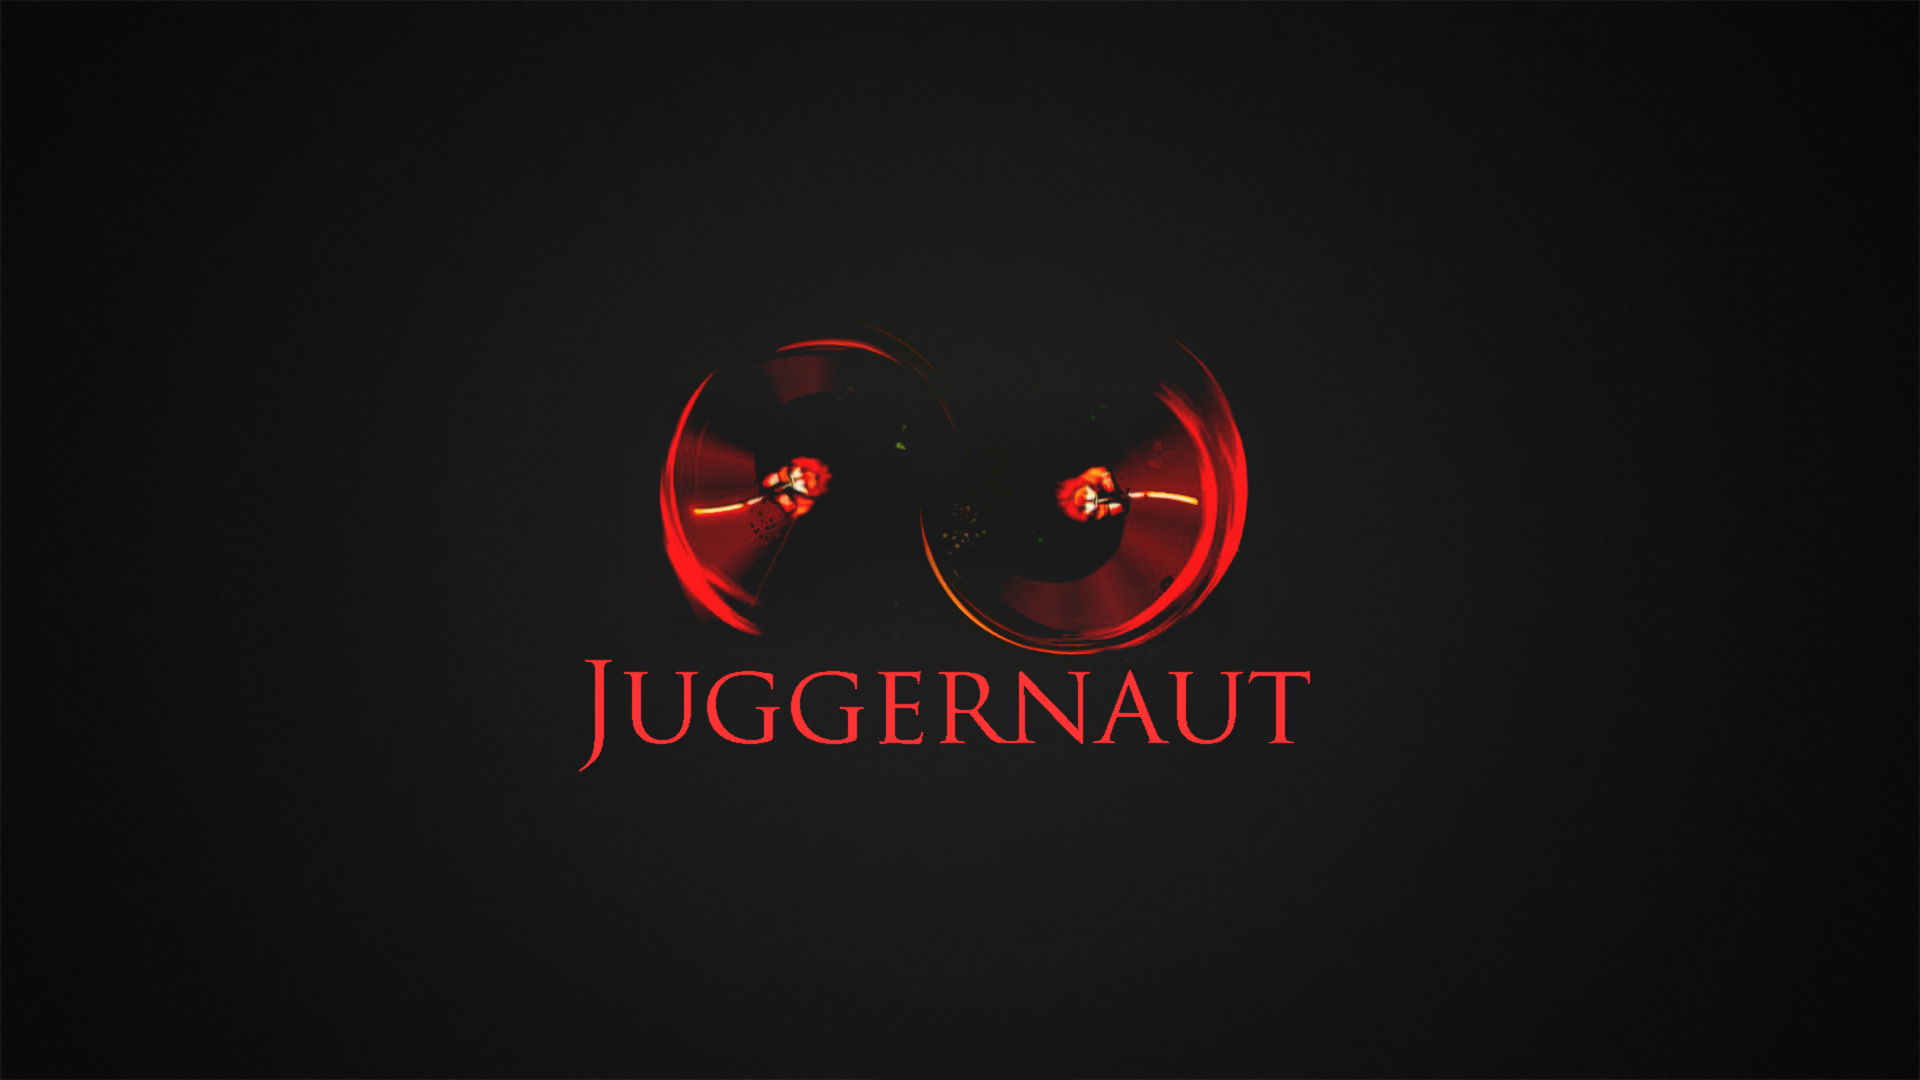 Group Of Juggernaut Wallpaper Minimalist By